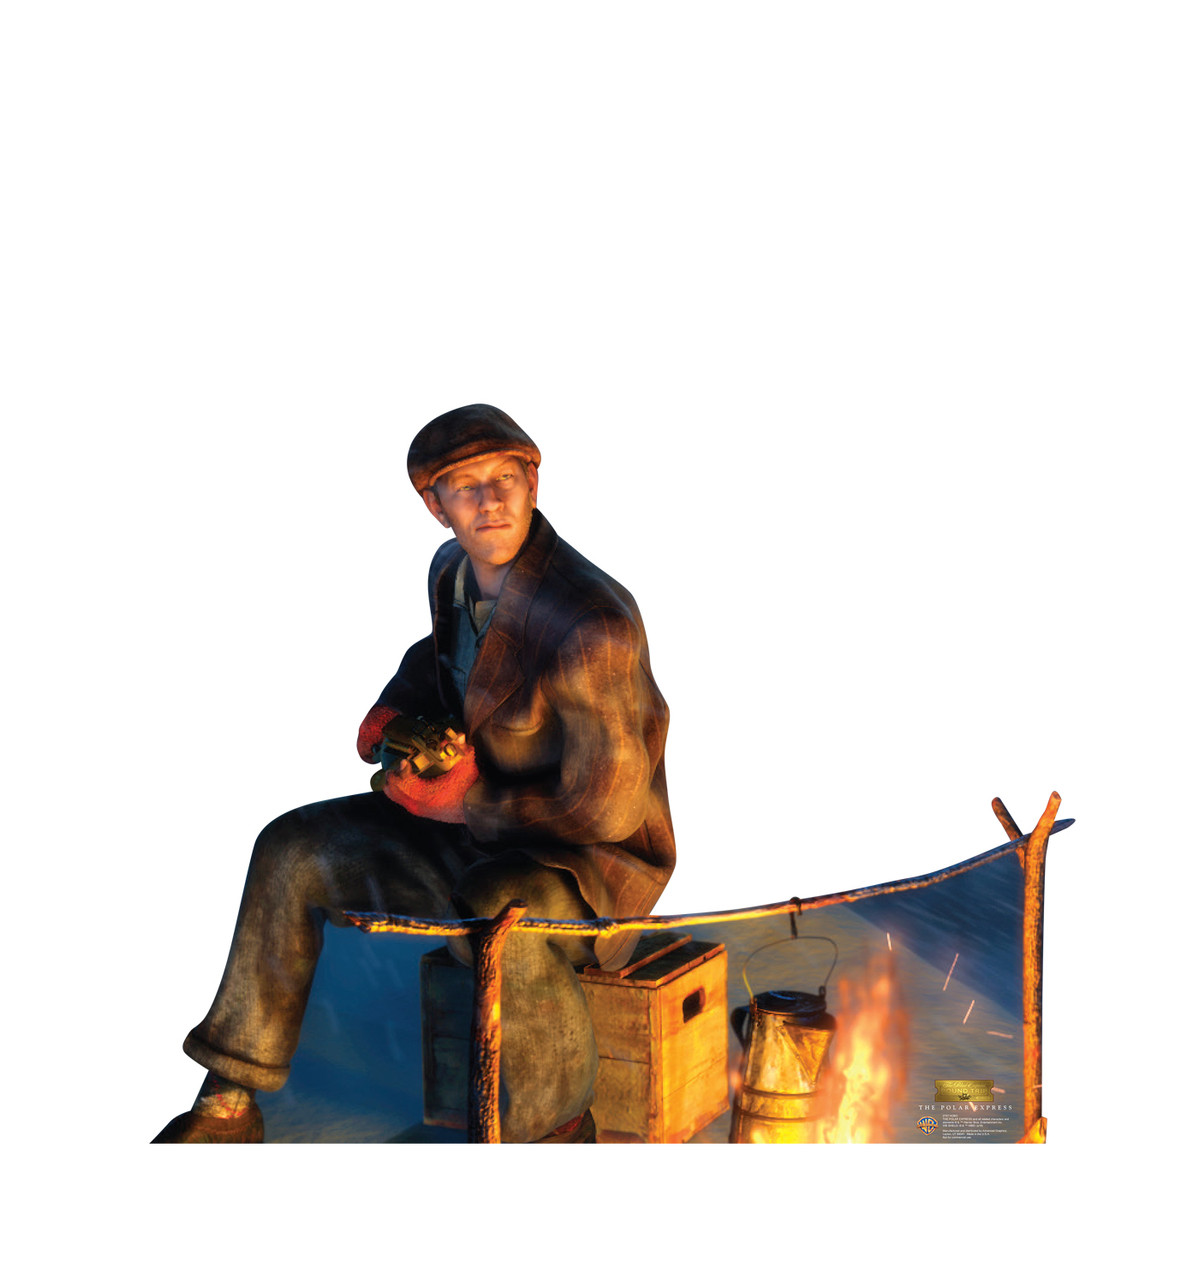 Life-size cardboard standee of the Hobo from The Polar Express.